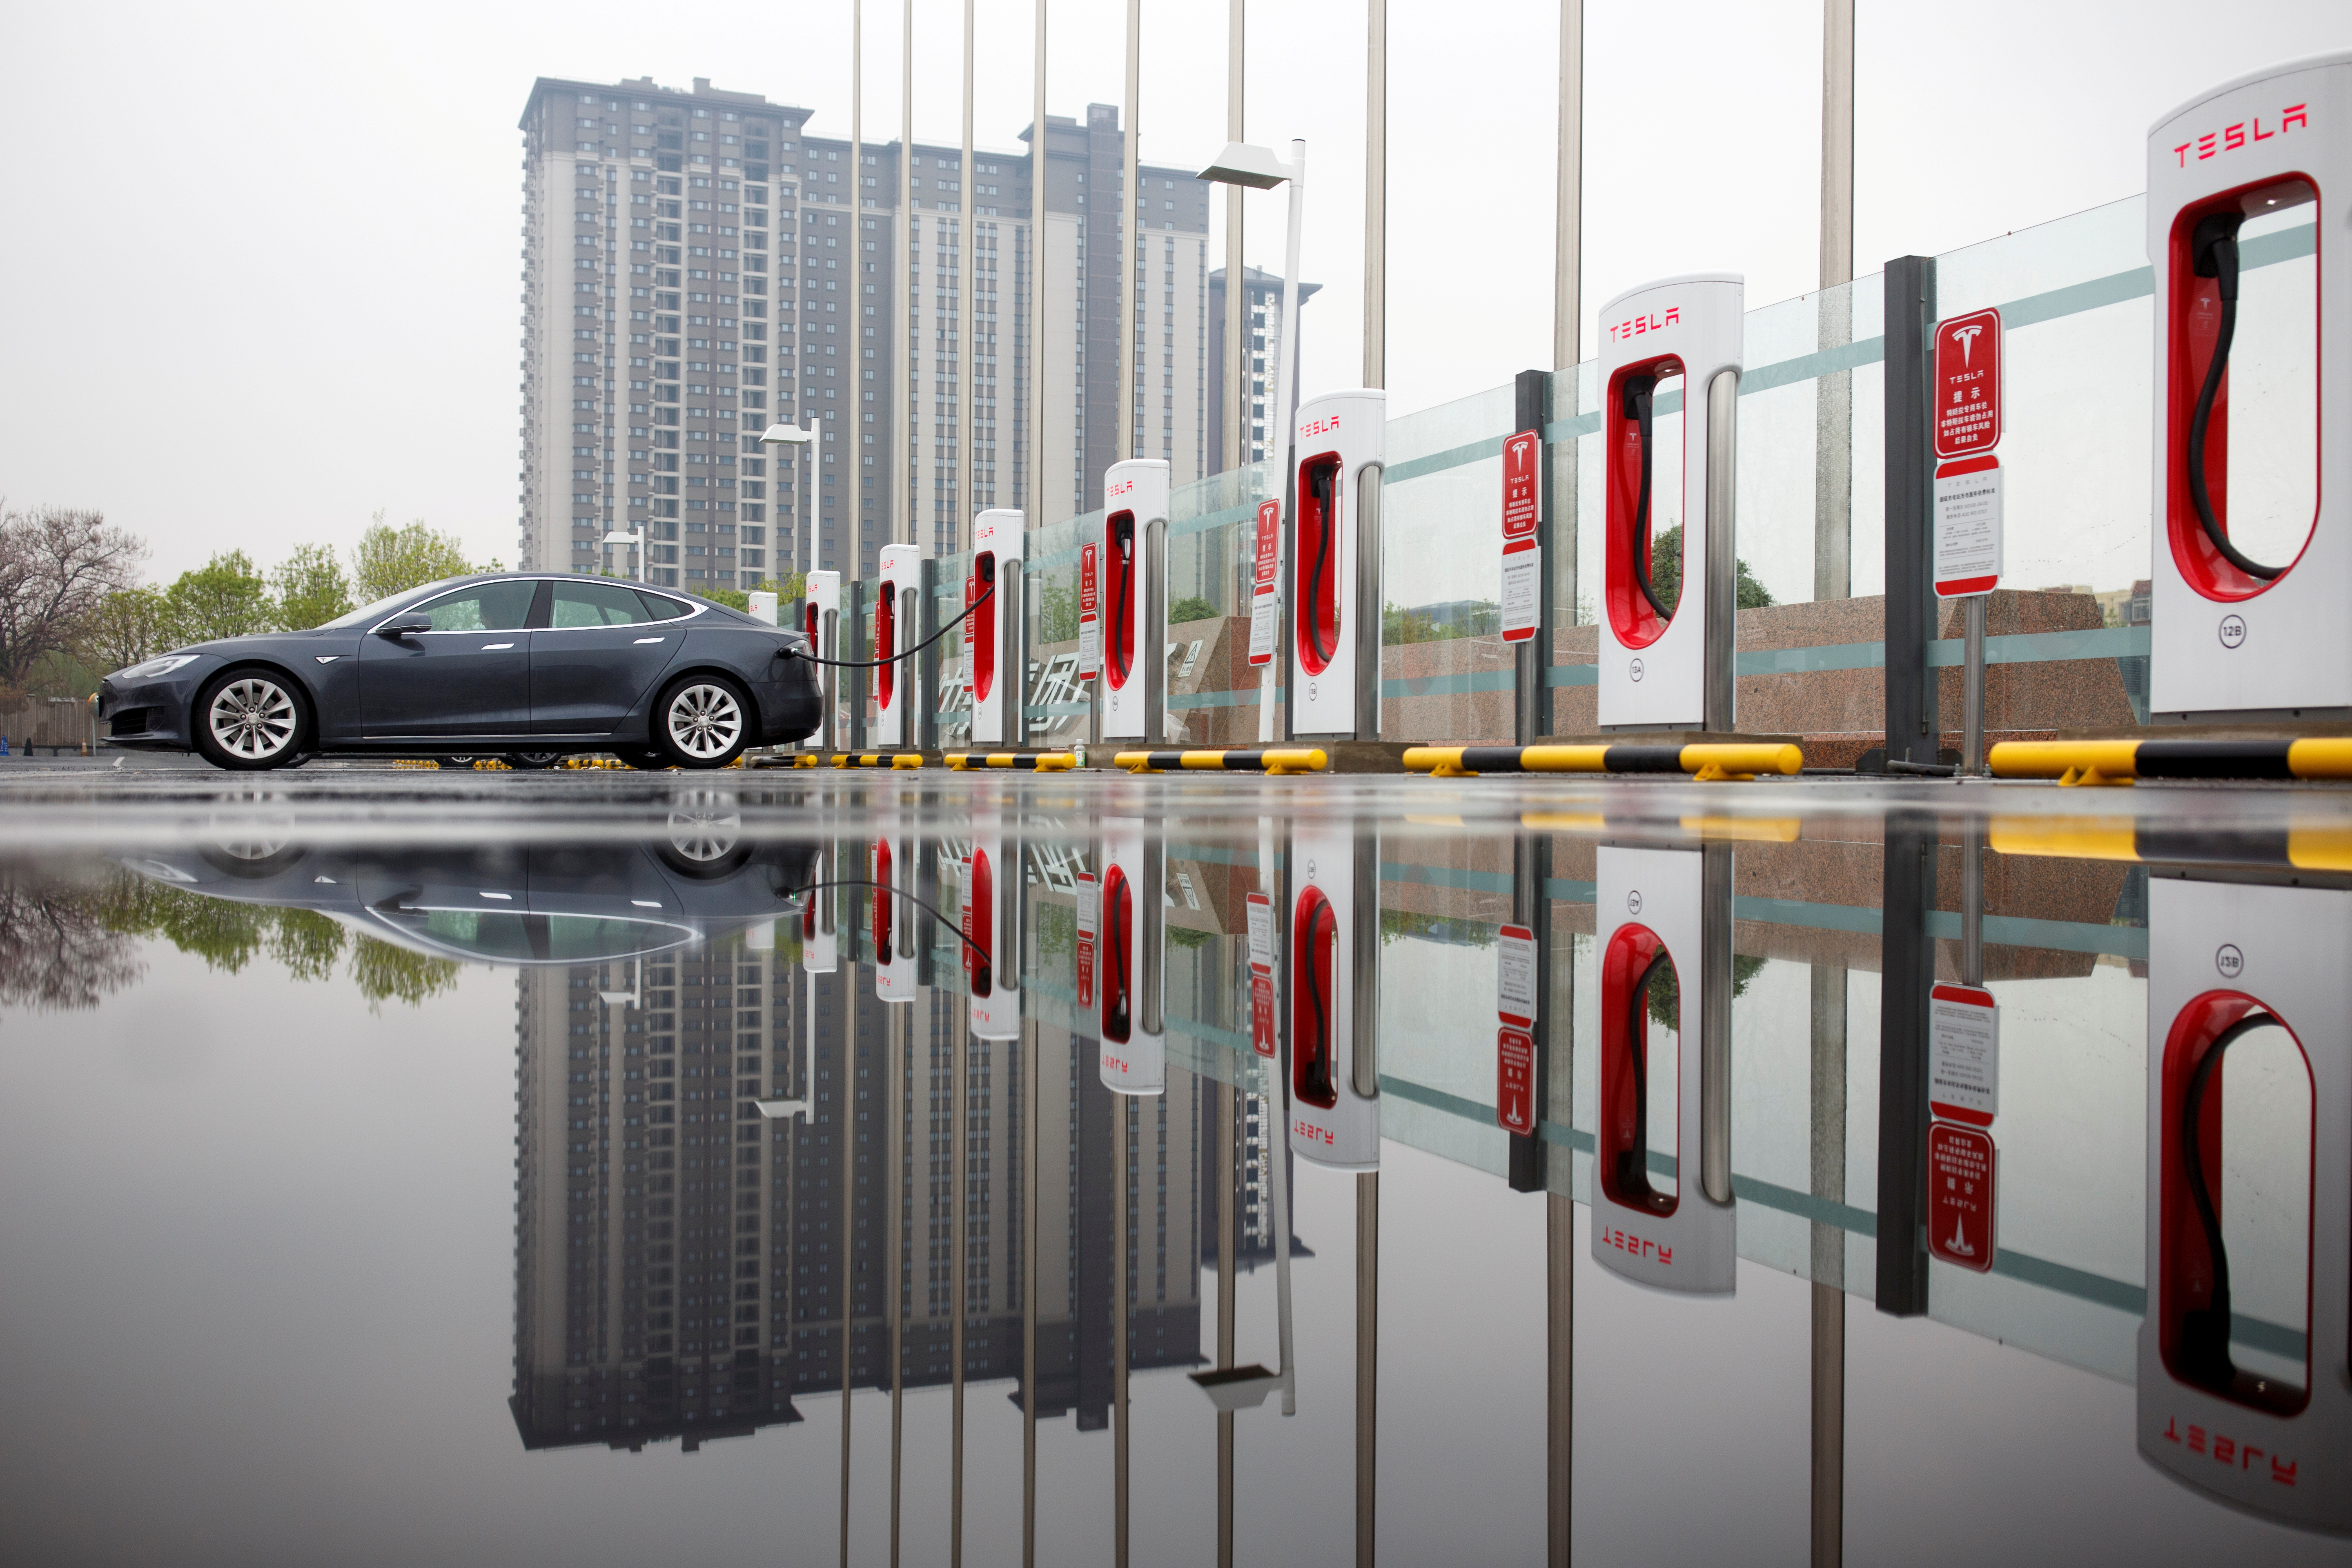 A Tesla car pictured at a charging point in Beijing, China, April 13, 2018. REUTERS/Thomas Peter/File Photo